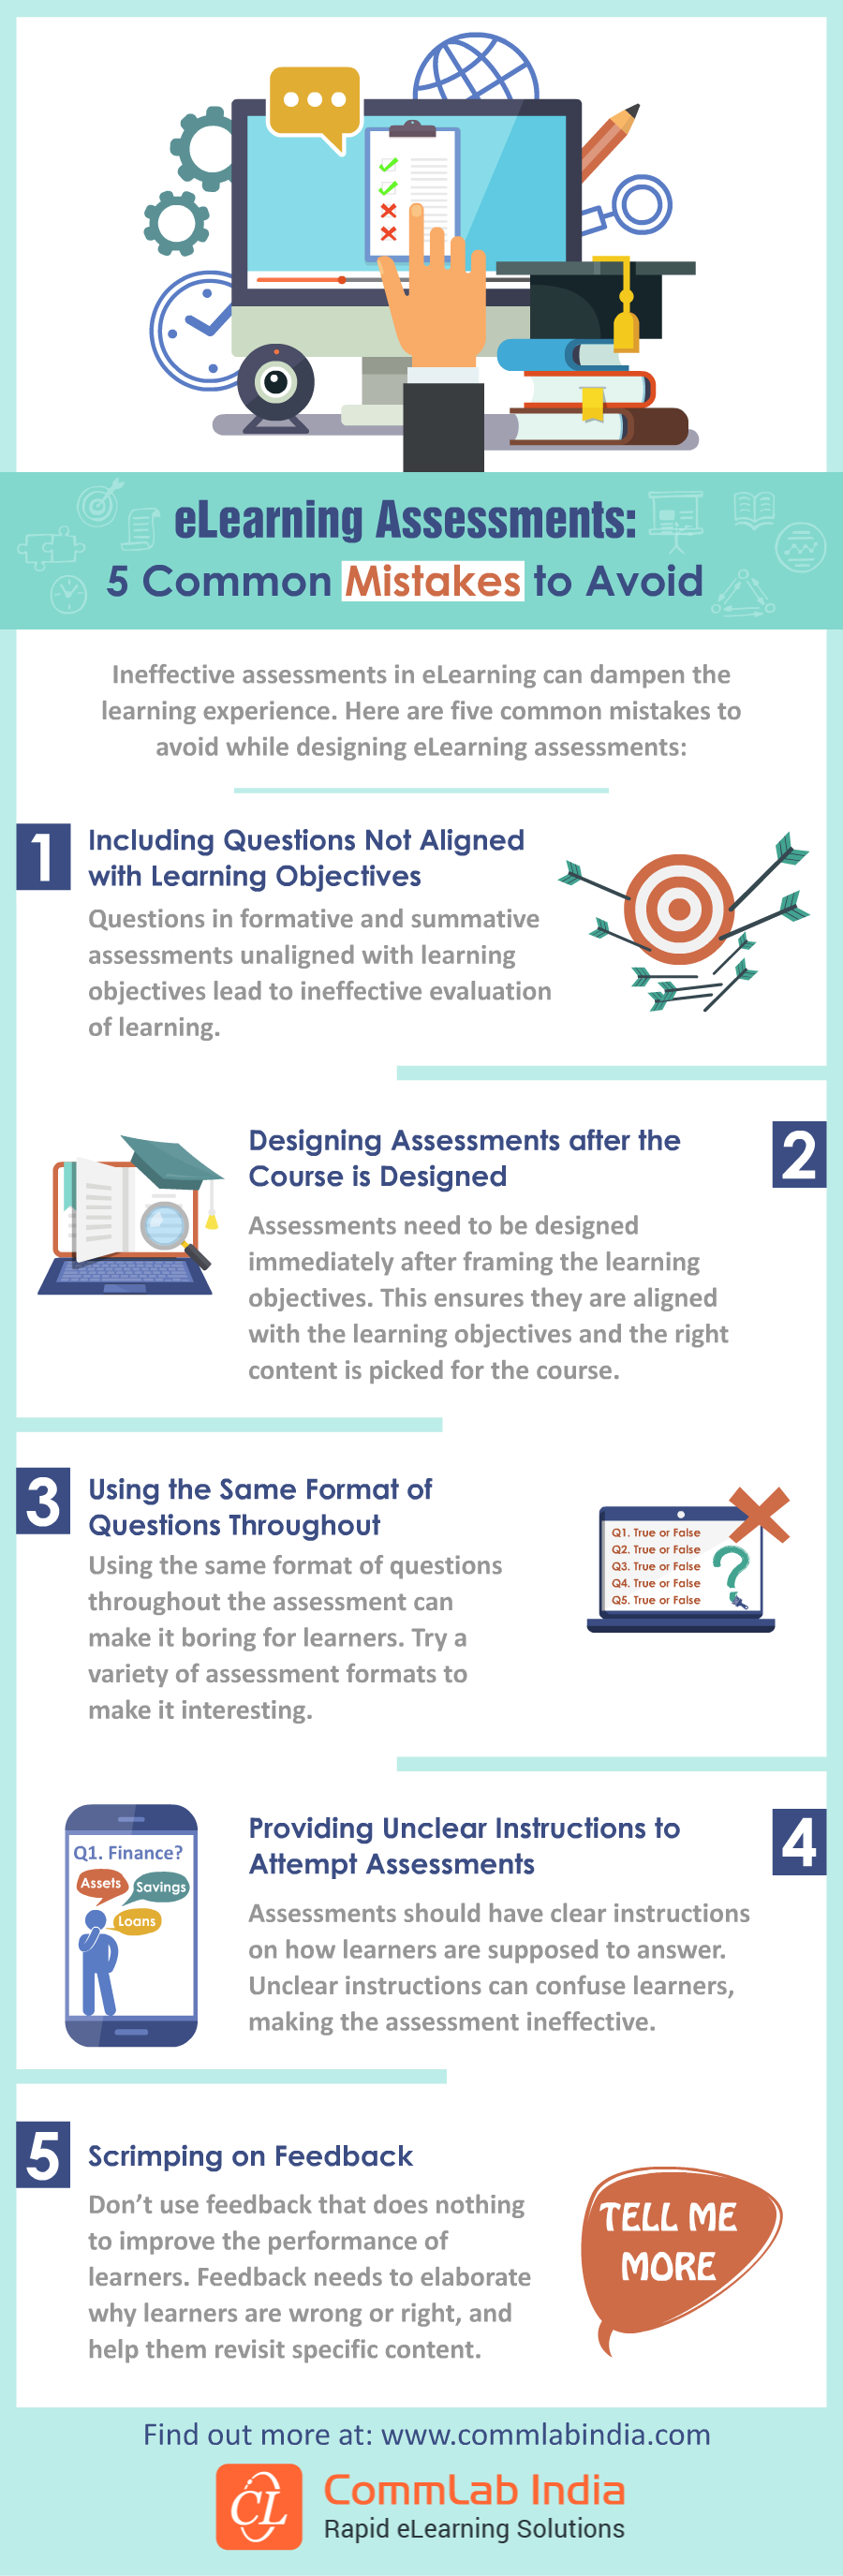 eLearning Assessments: 5 Common Mistakes to Avoid [Infographic]